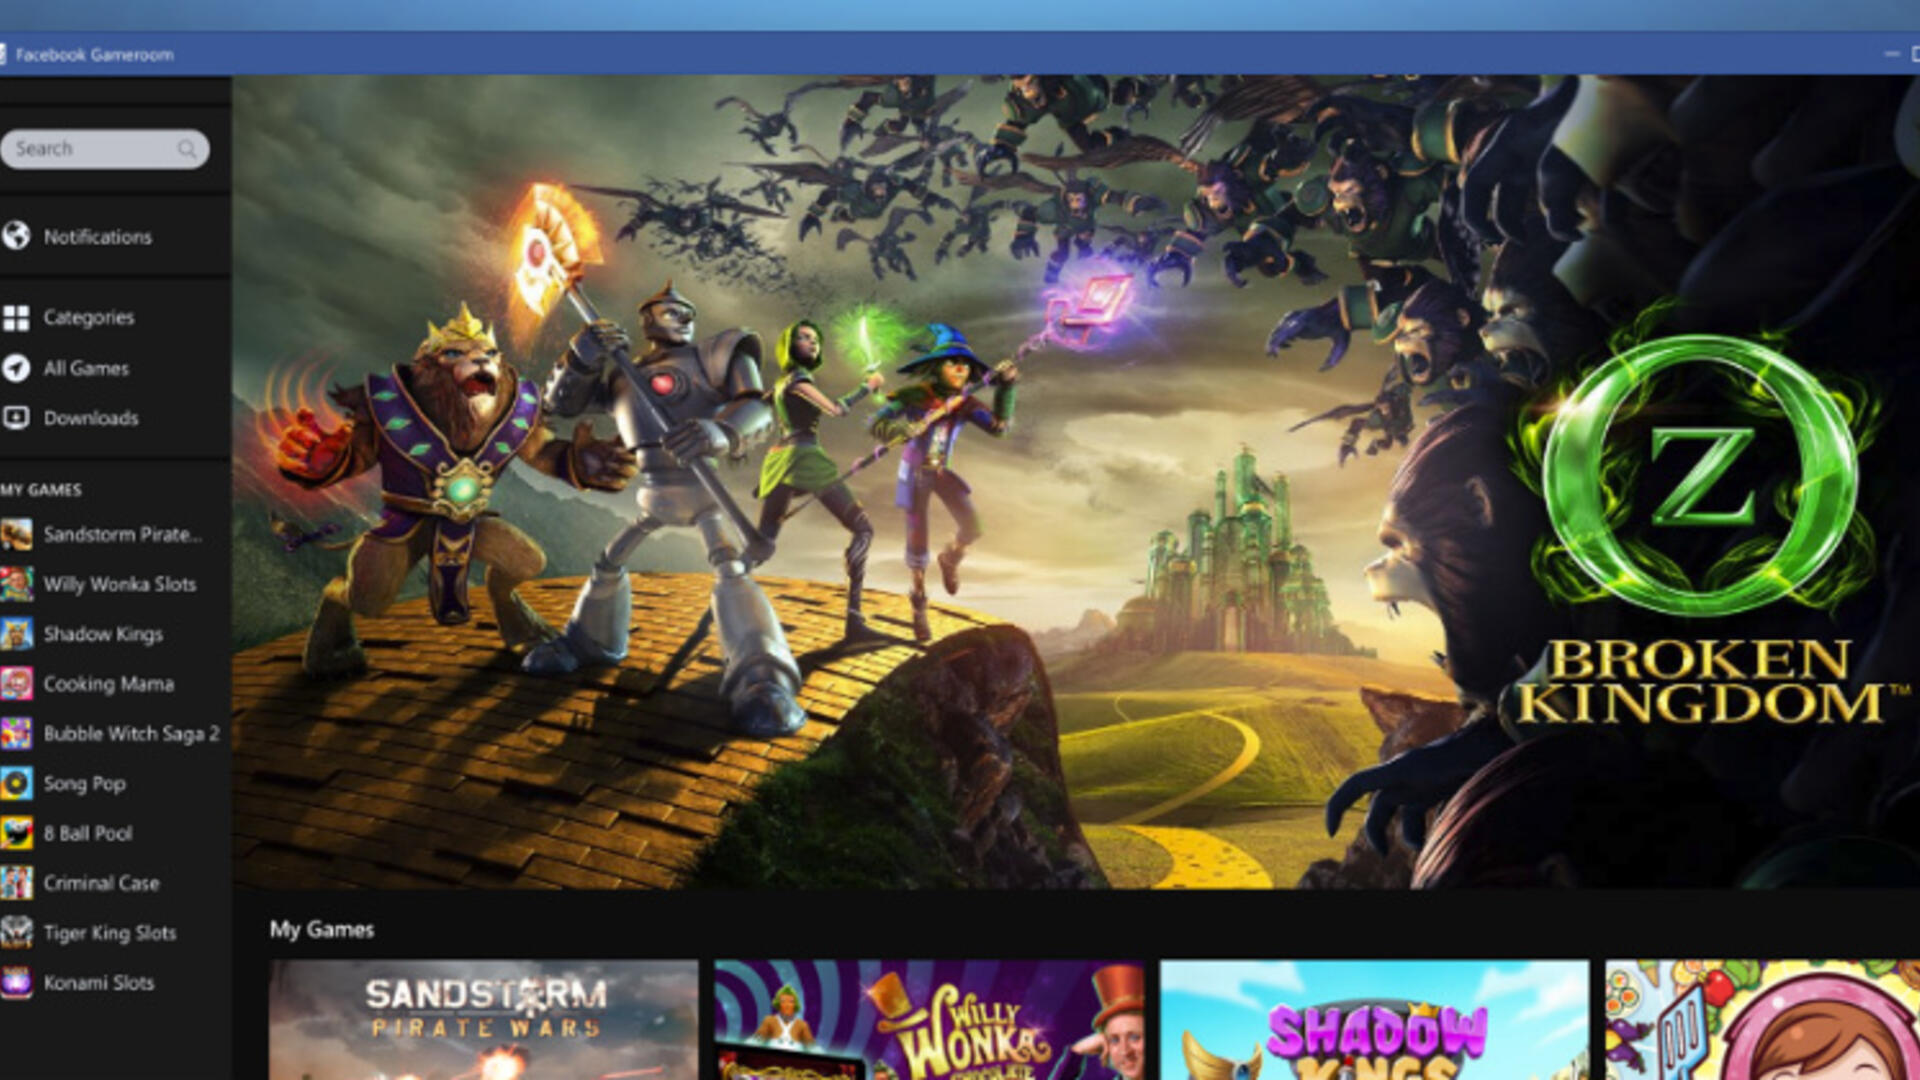 Facebook Aims at Casual PC Players With Gameroom | USgamer